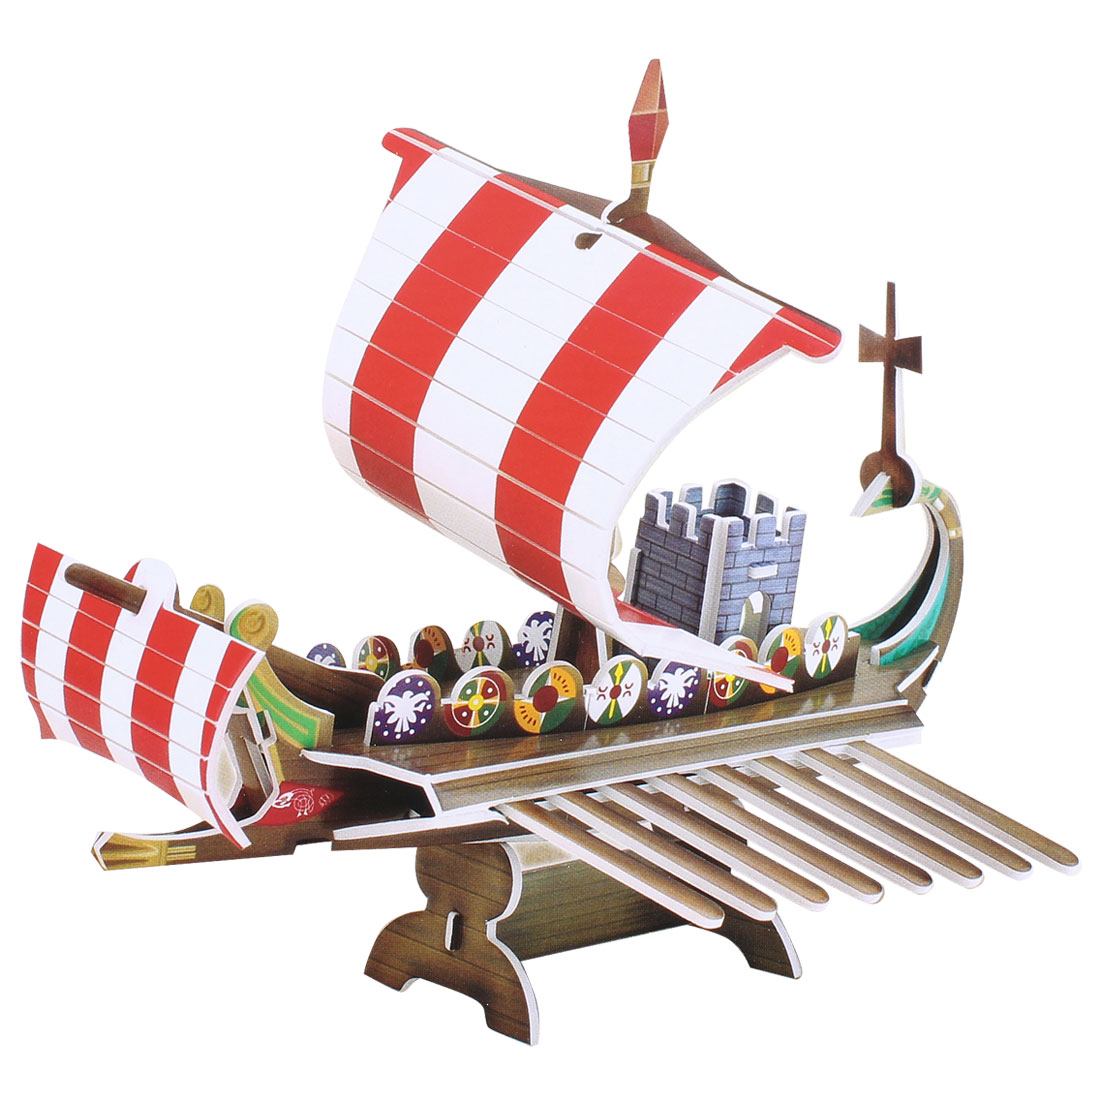 Paper Foam Board 22 Pcs 3D Pirate Sailboat Intelligence Puzzle Toy for Kids